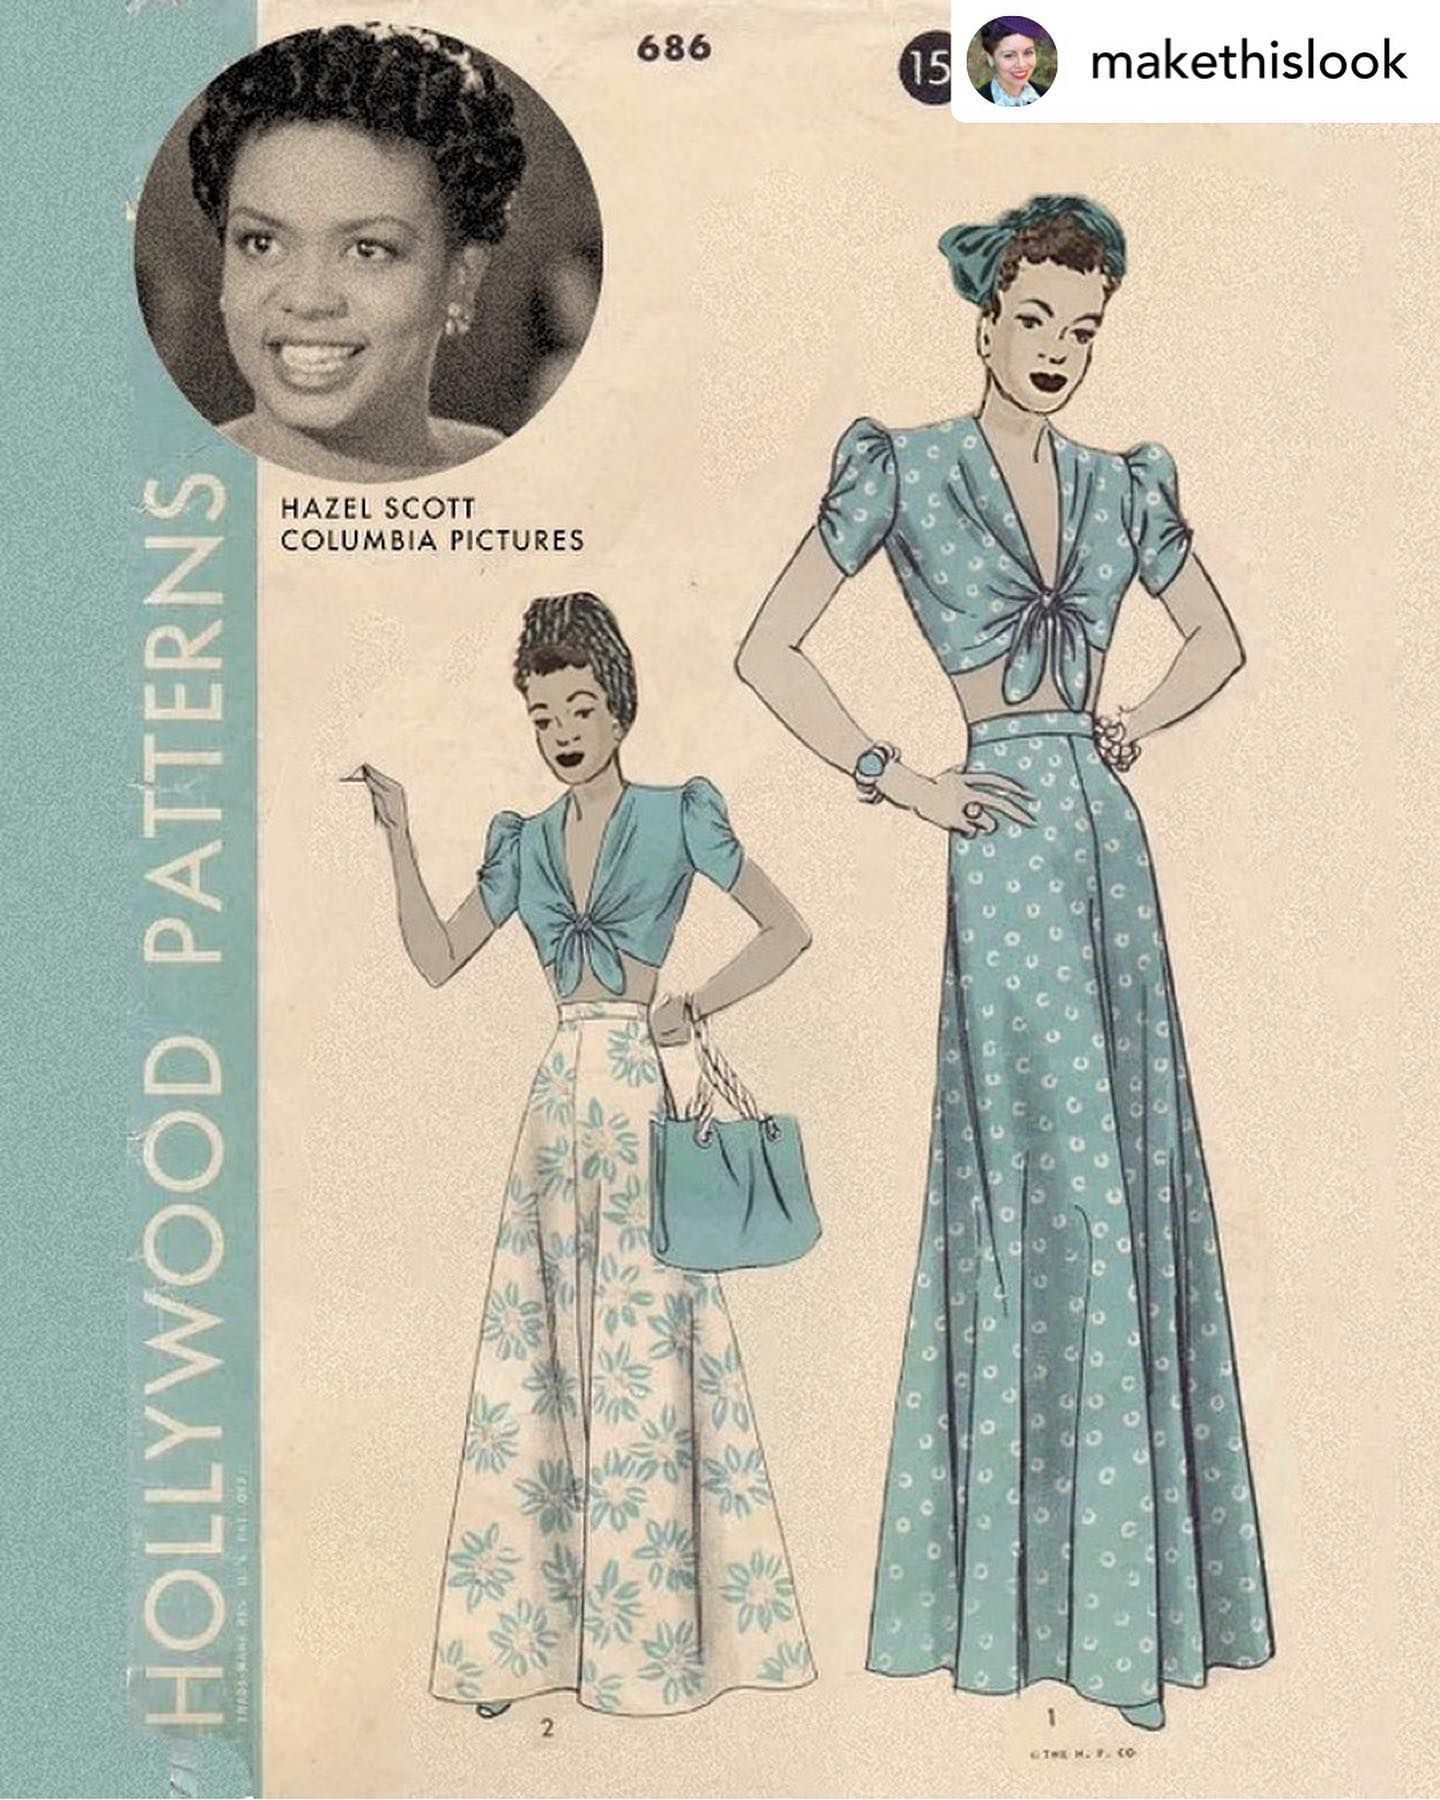 1940s Sewing Pattern Recreated With Black Women This Features Hazel Scott Fashion Illustration Vintage 1940s Sewing Patterns Pattern Fashion